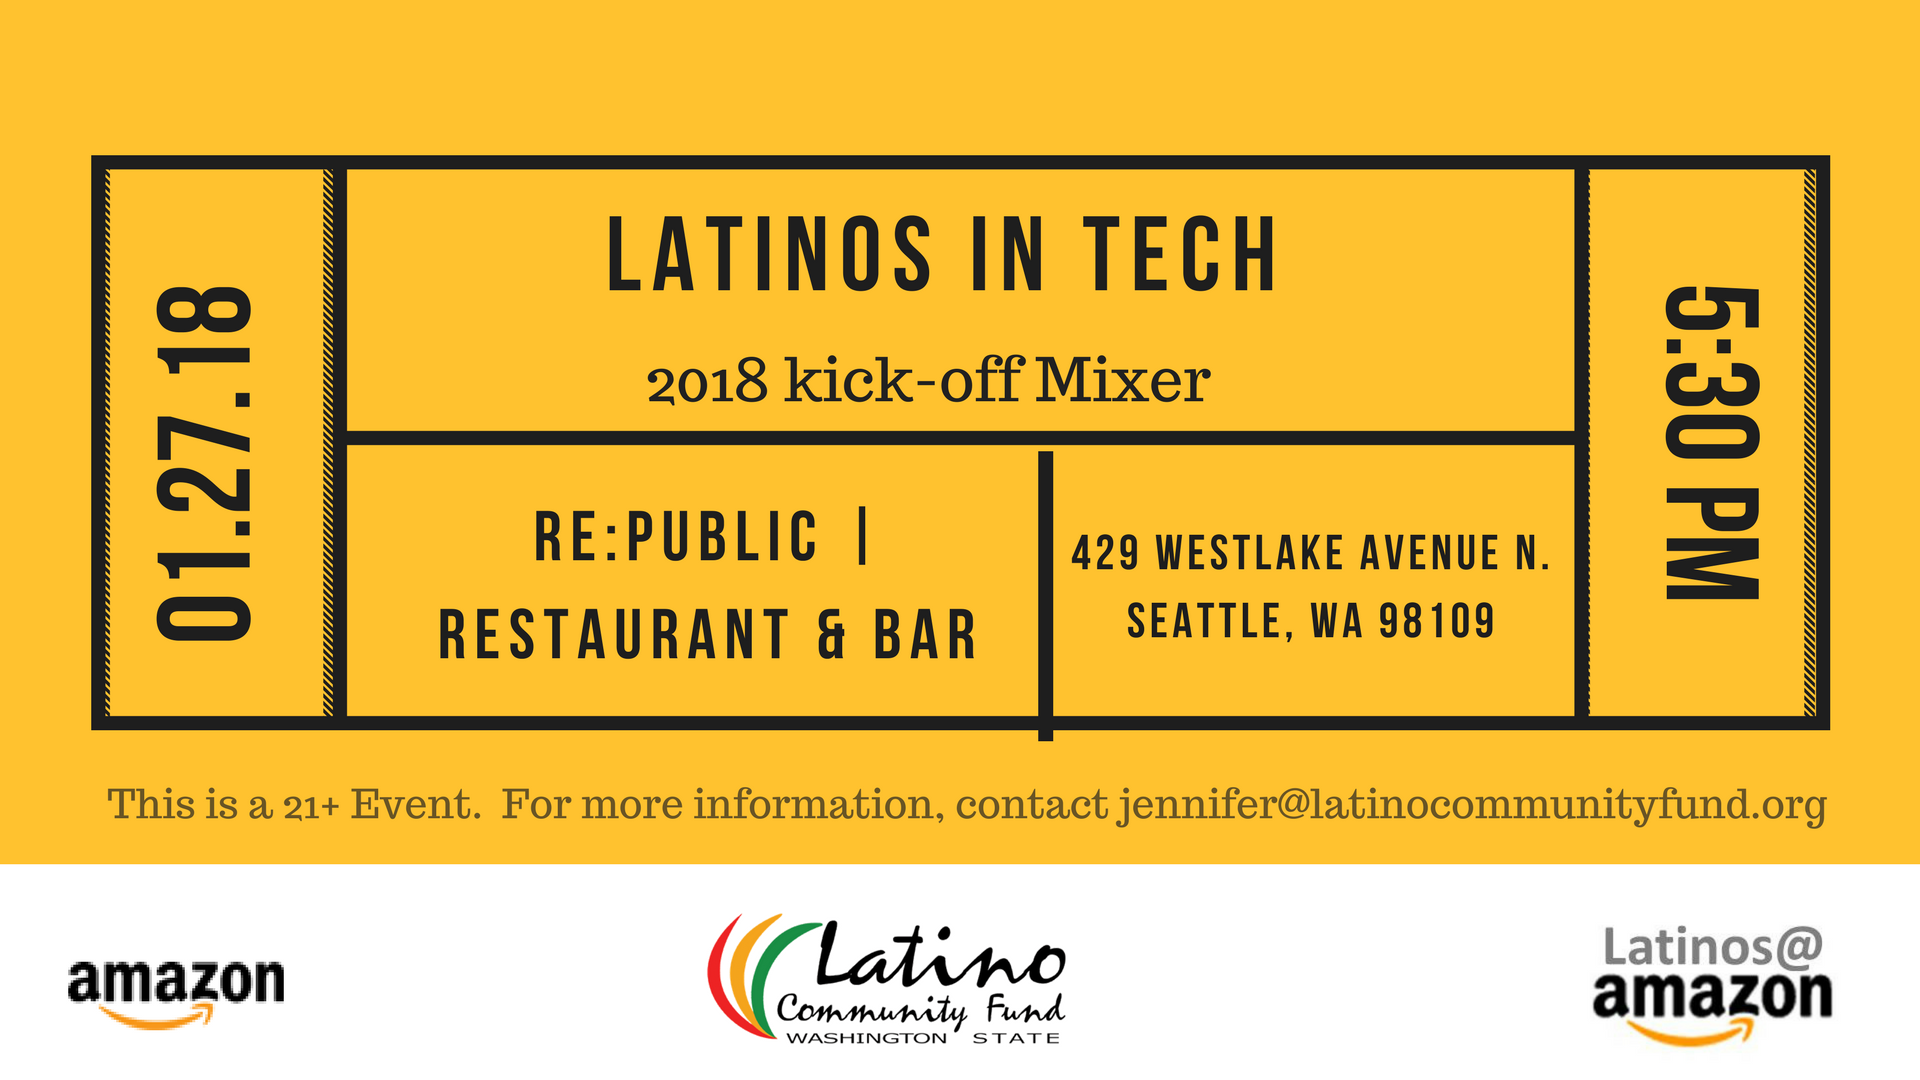 012718_LCF_Latinos_in_Tech_Mixer_with_Amazon_FB_Event.png